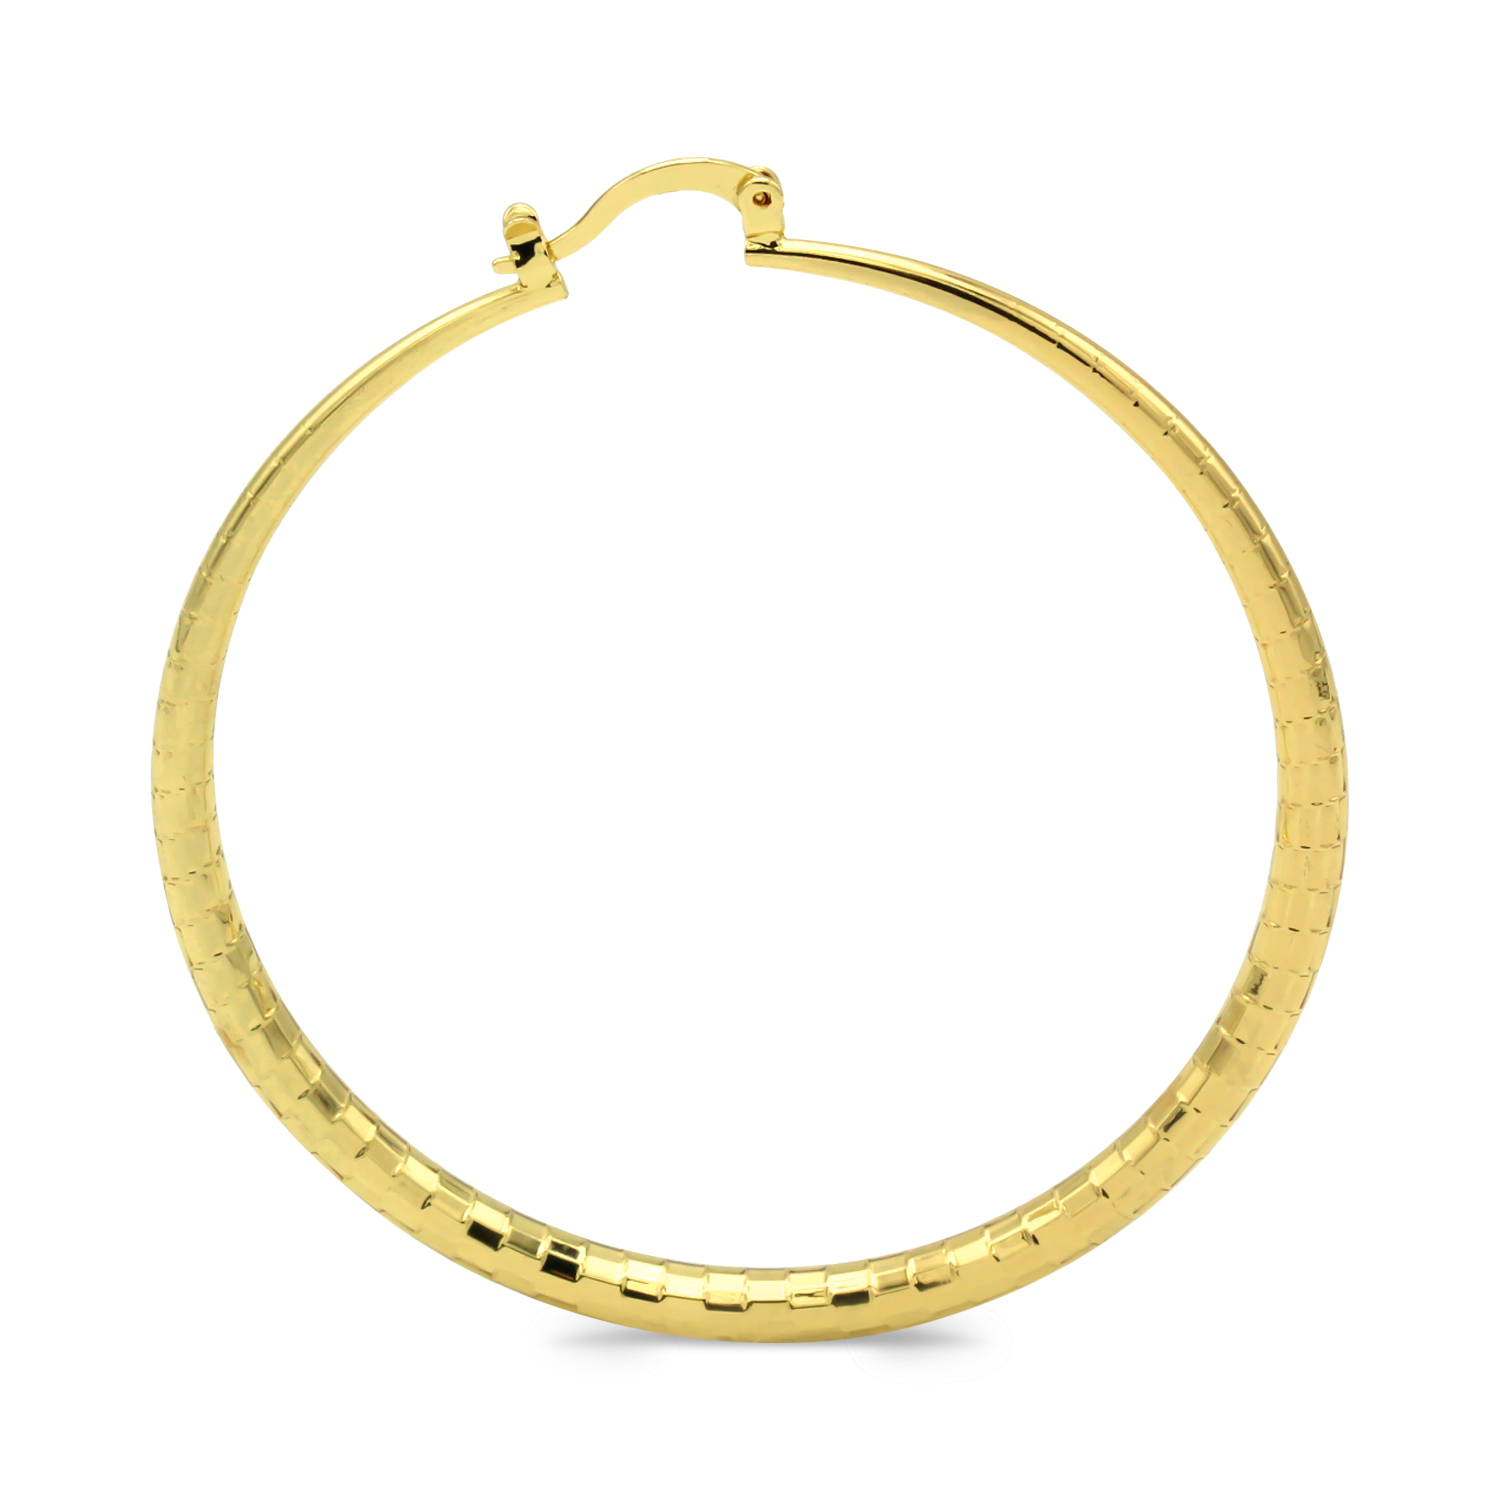 Hoop Earrings 14k Gold Plated Filled Fashion Stainless Steel Jewelry Circle Scale Designed Earring For Women 50mm - image 1 de 5